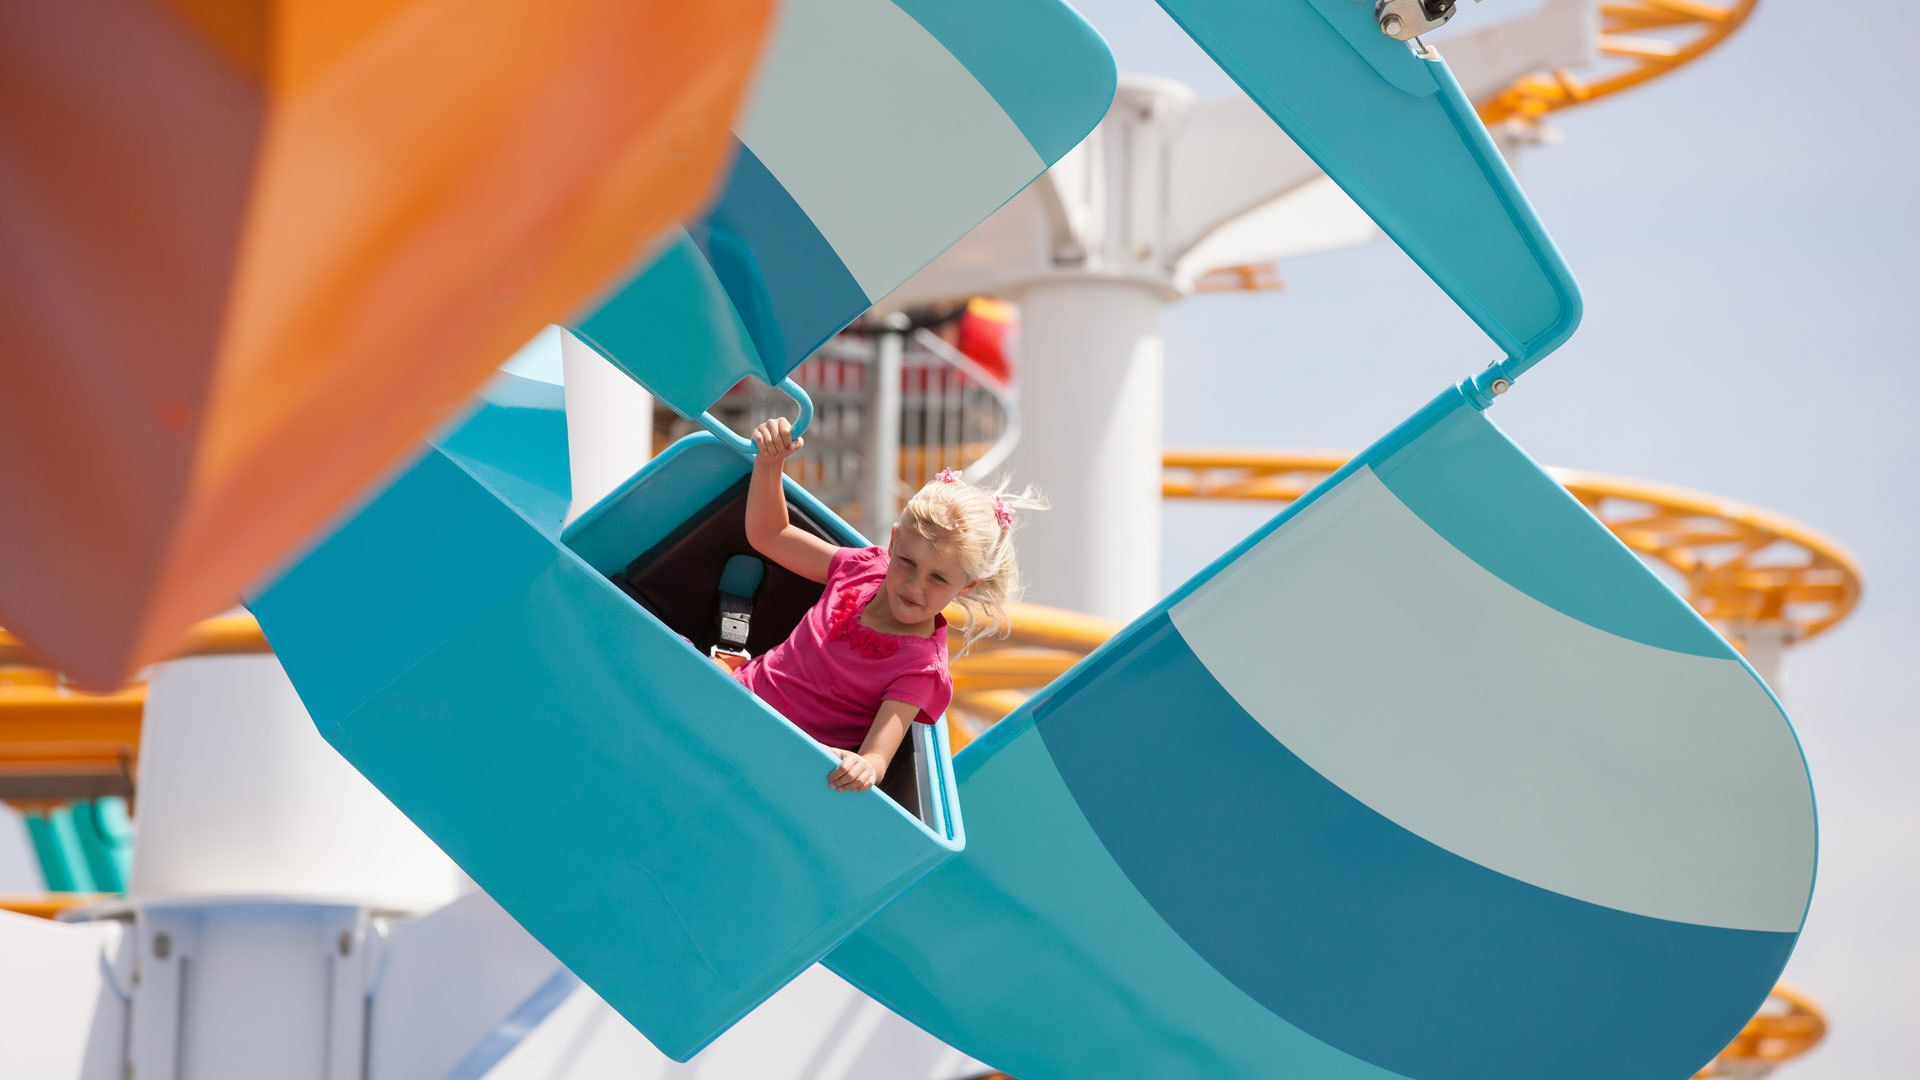 Young girl enjoying a ride at Knott's theme park in California.